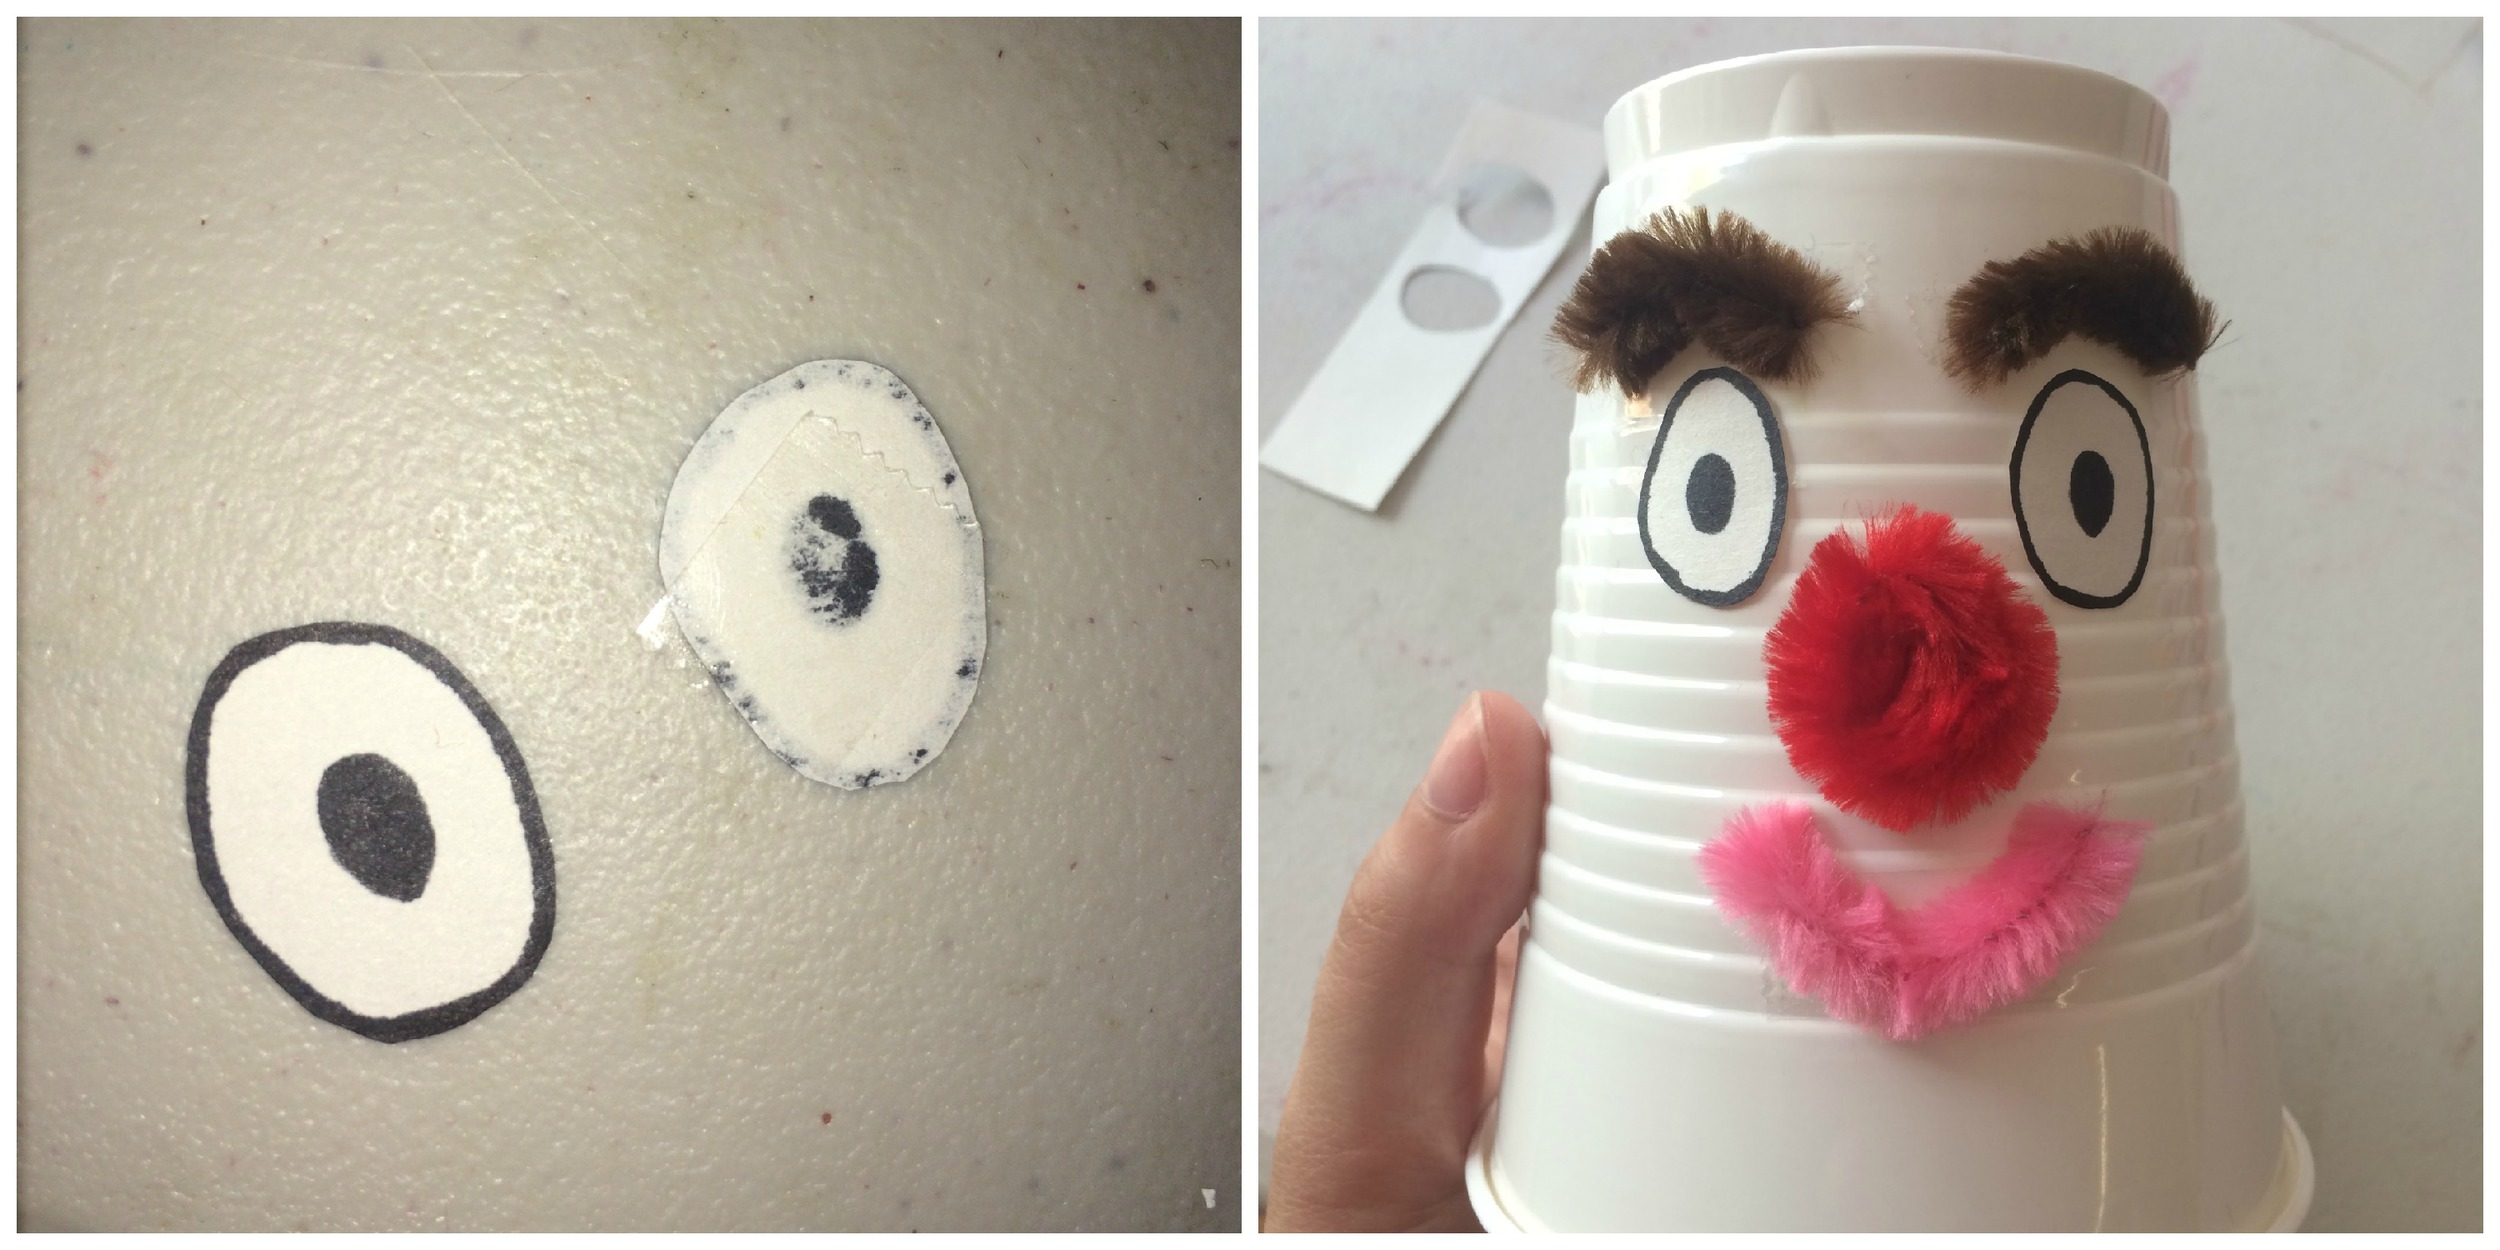 3. We suggest using googly eyes, but we couldn't find any while we were making this, so we just drew some instead! But we do think googly eyes would be much cuter. You can also add a mouth at this point. Take some artistic liberties with it! You can customize this DIY any way that you want.